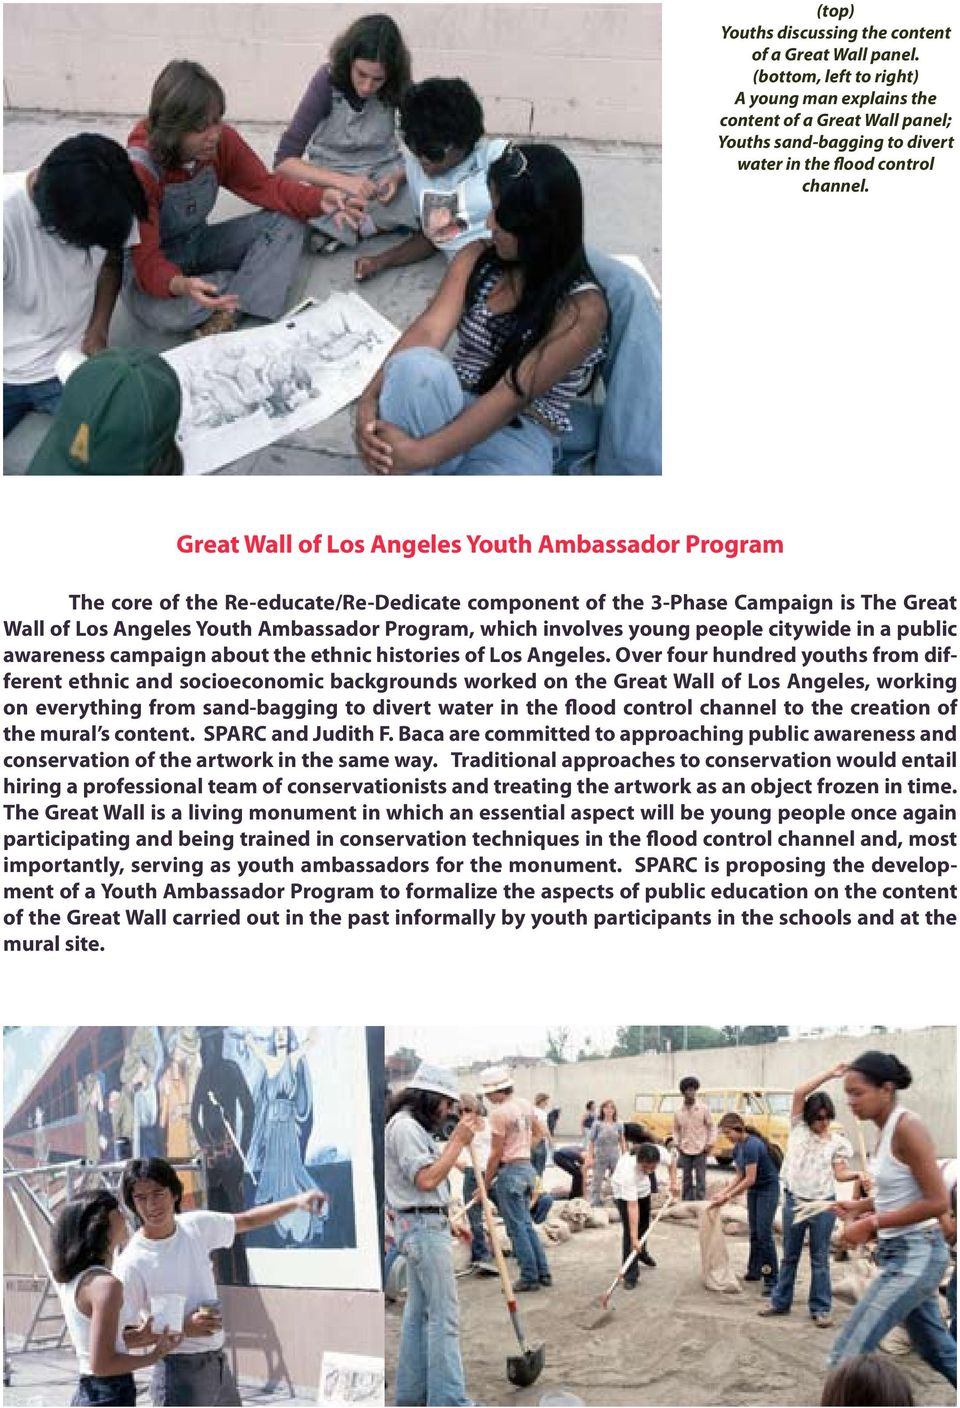 Great Wall of Los Angeles Youth Ambassador Program The core of the Re-educate/Re-Dedicate component of the 3-Phase Campaign is The Great Wall of Los Angeles Youth Ambassador Program, which involves